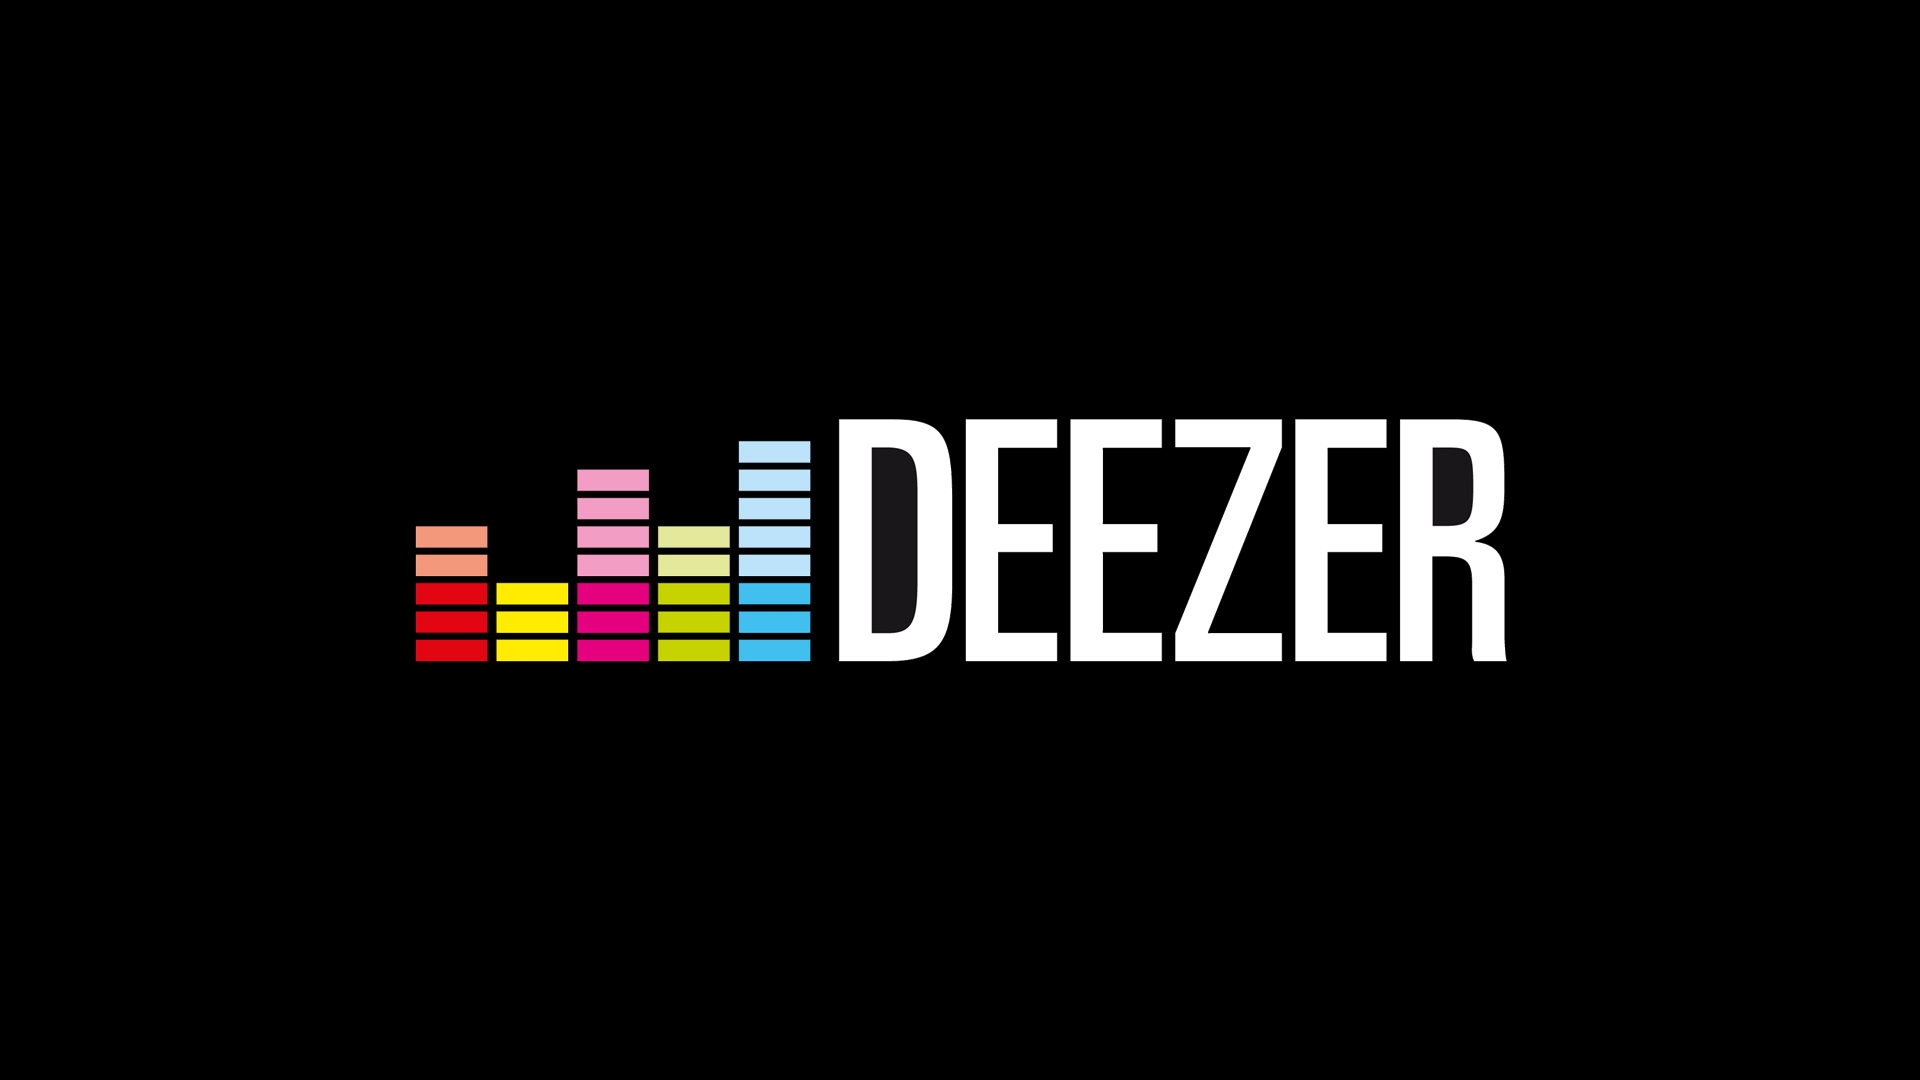 5,000 Deezer streams for one track